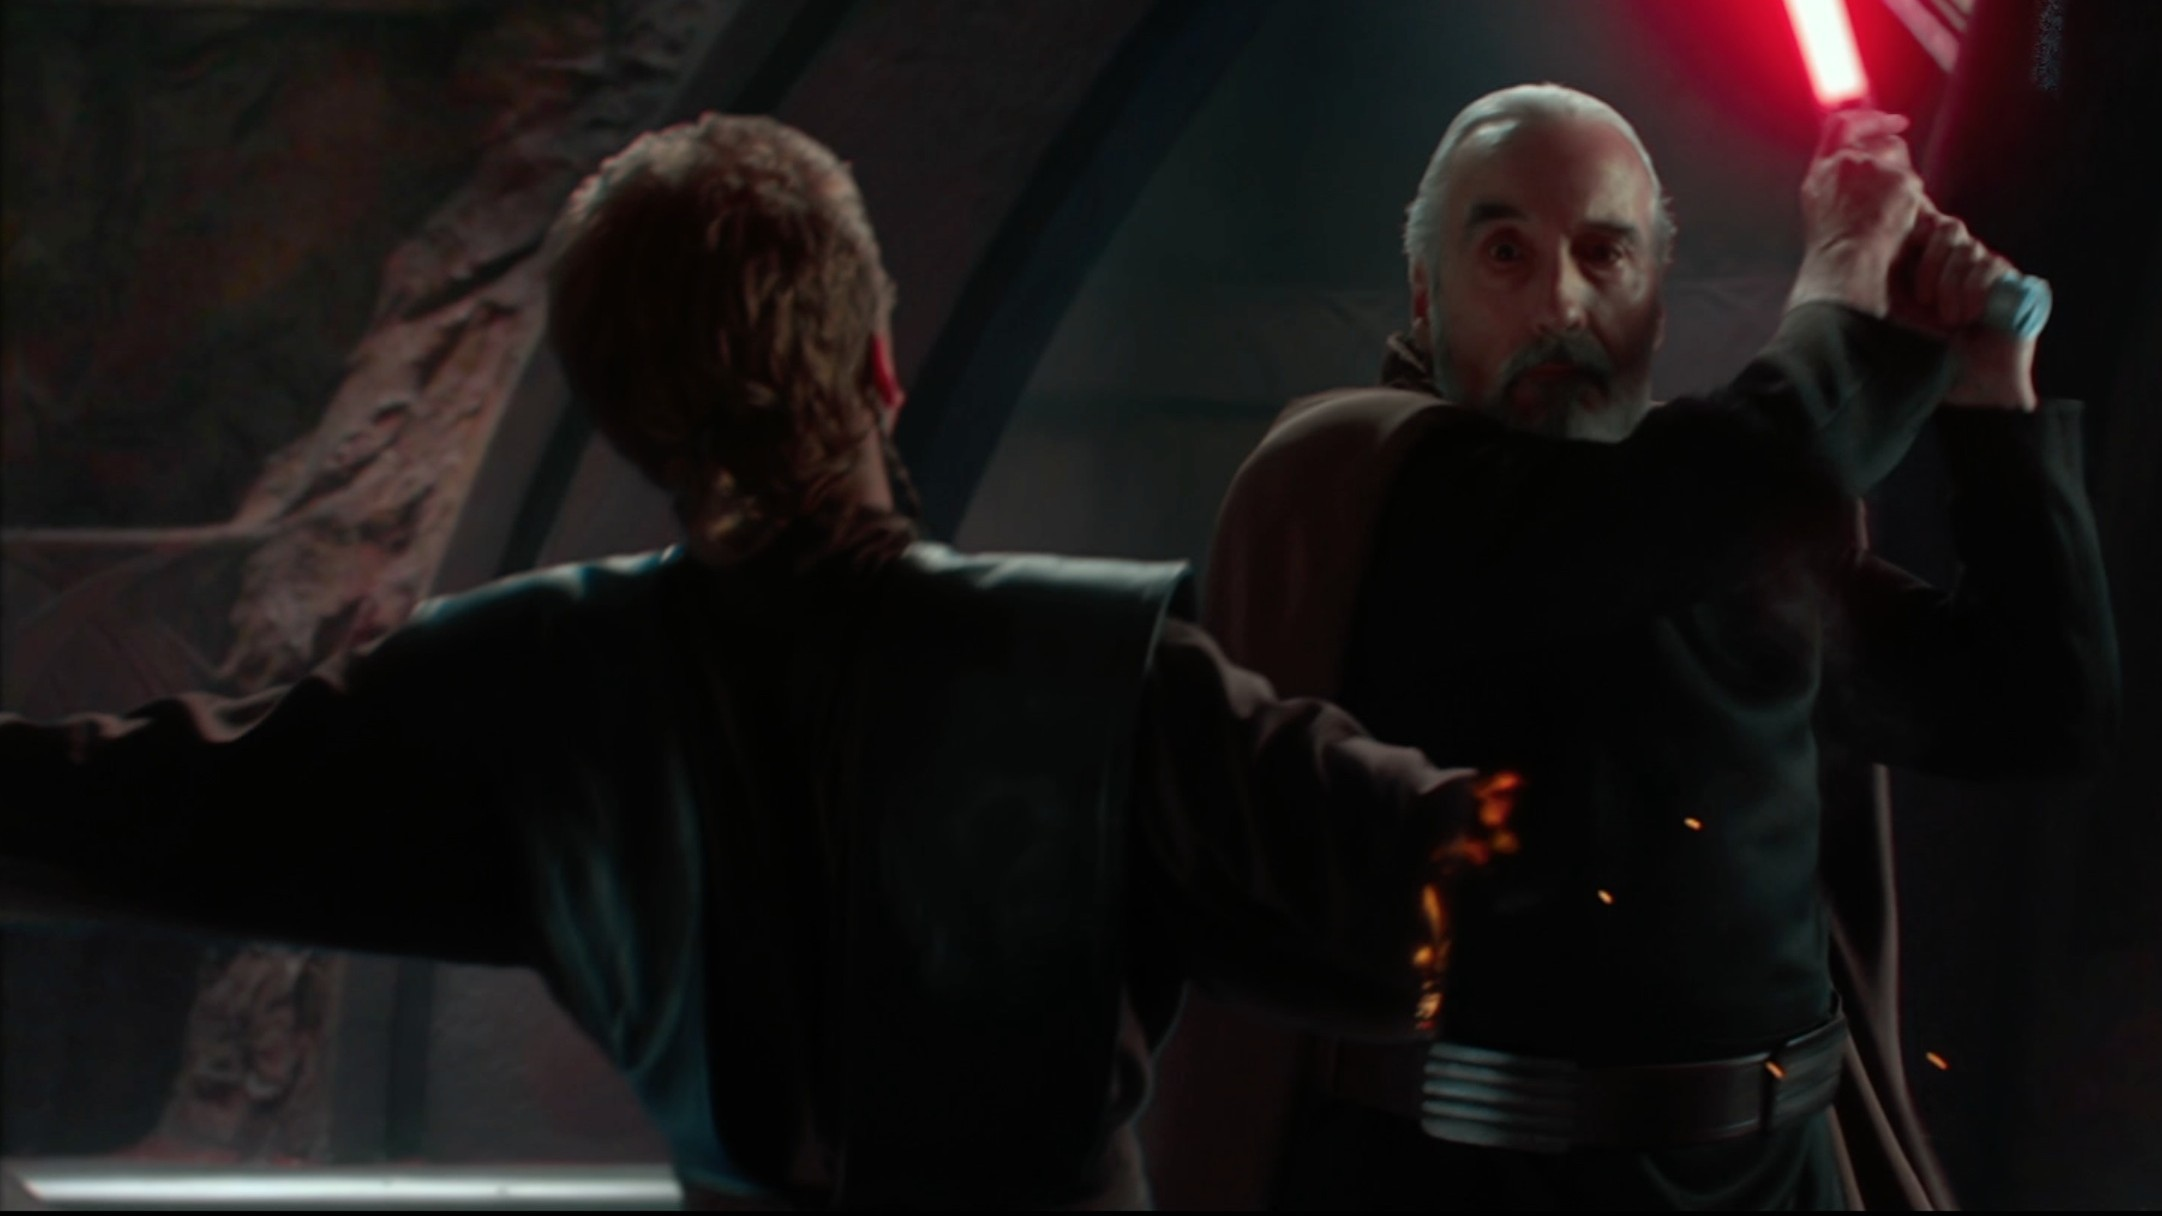 Lucasfilm Say You Can T Chop People S Limbs Off Willy Nilly Rock Paper Shotgun This page of the guide to star wars jedi: chop people s limbs off willy nilly